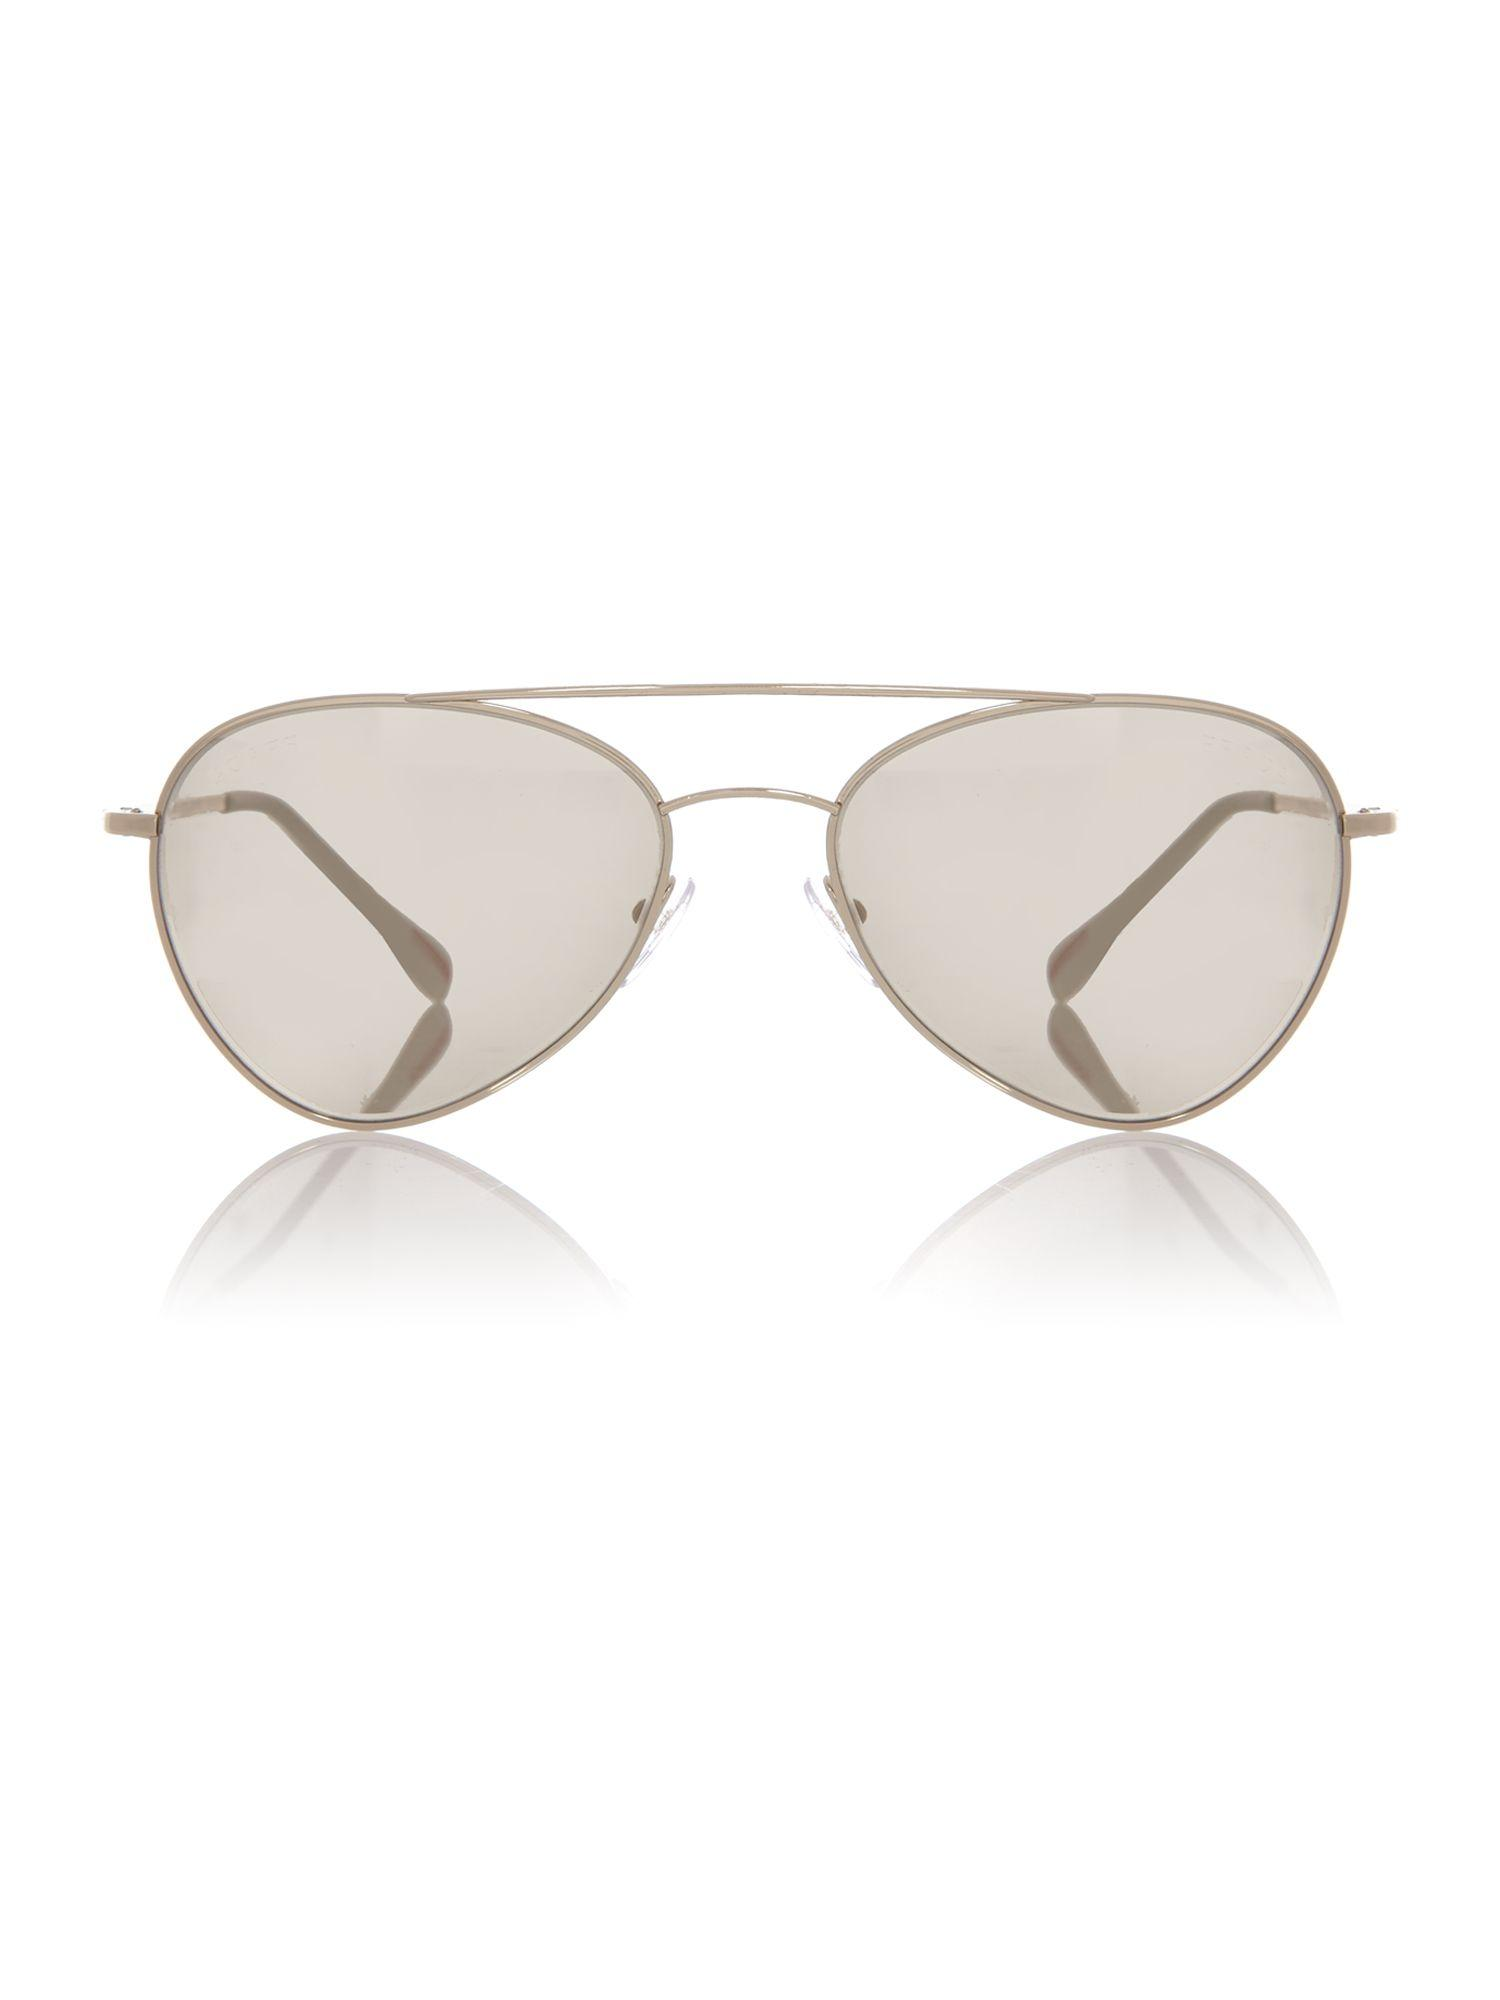 Prada Gold Phantos Ps 50ss Sunglasses in Metallic